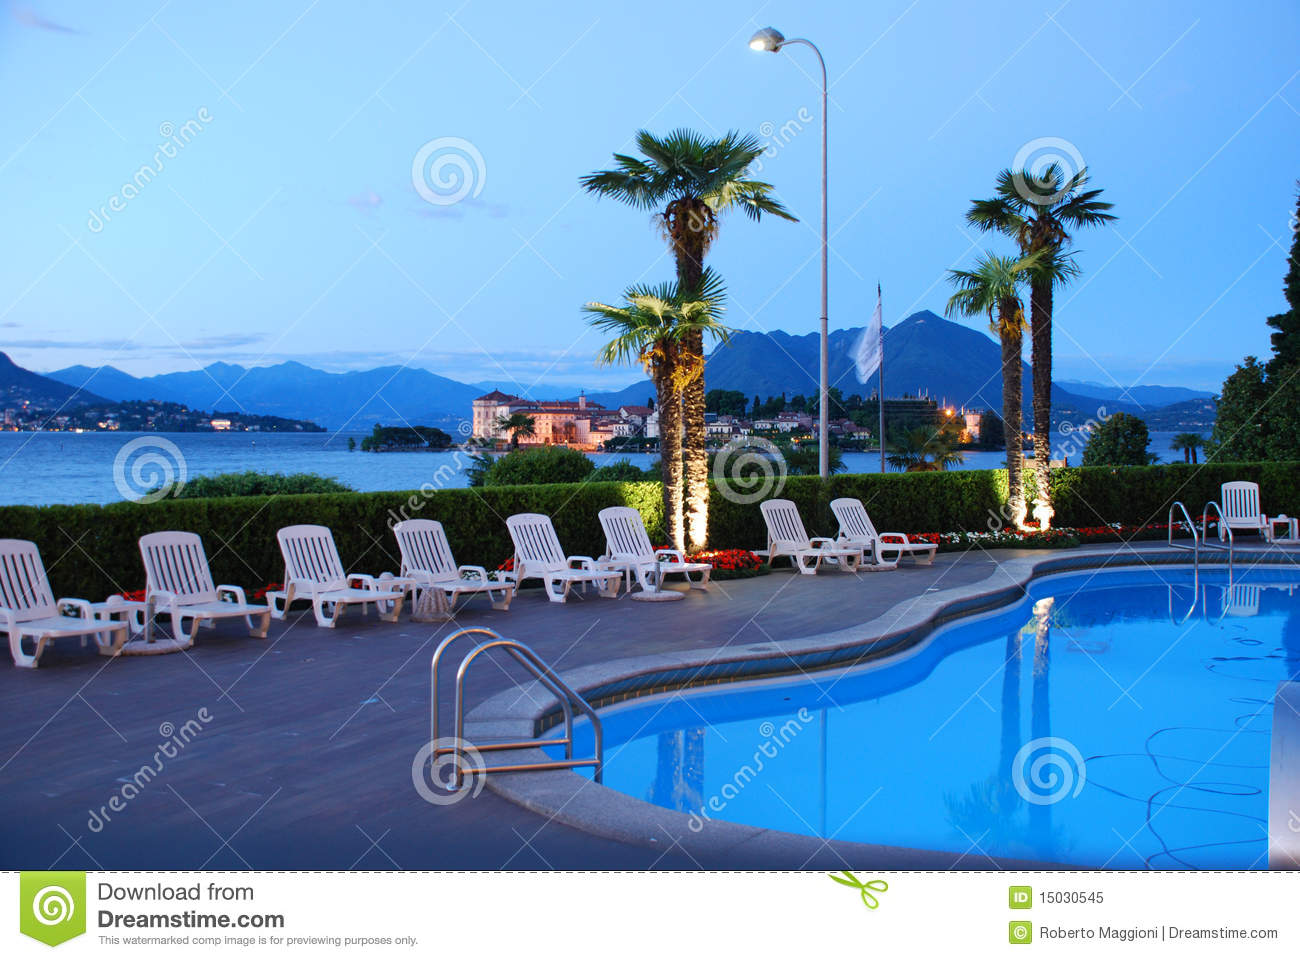 Luxury Hotel Lago Maggiore Italy Swimming Pool Stock Image Image Of Luxurious Lake 15030545